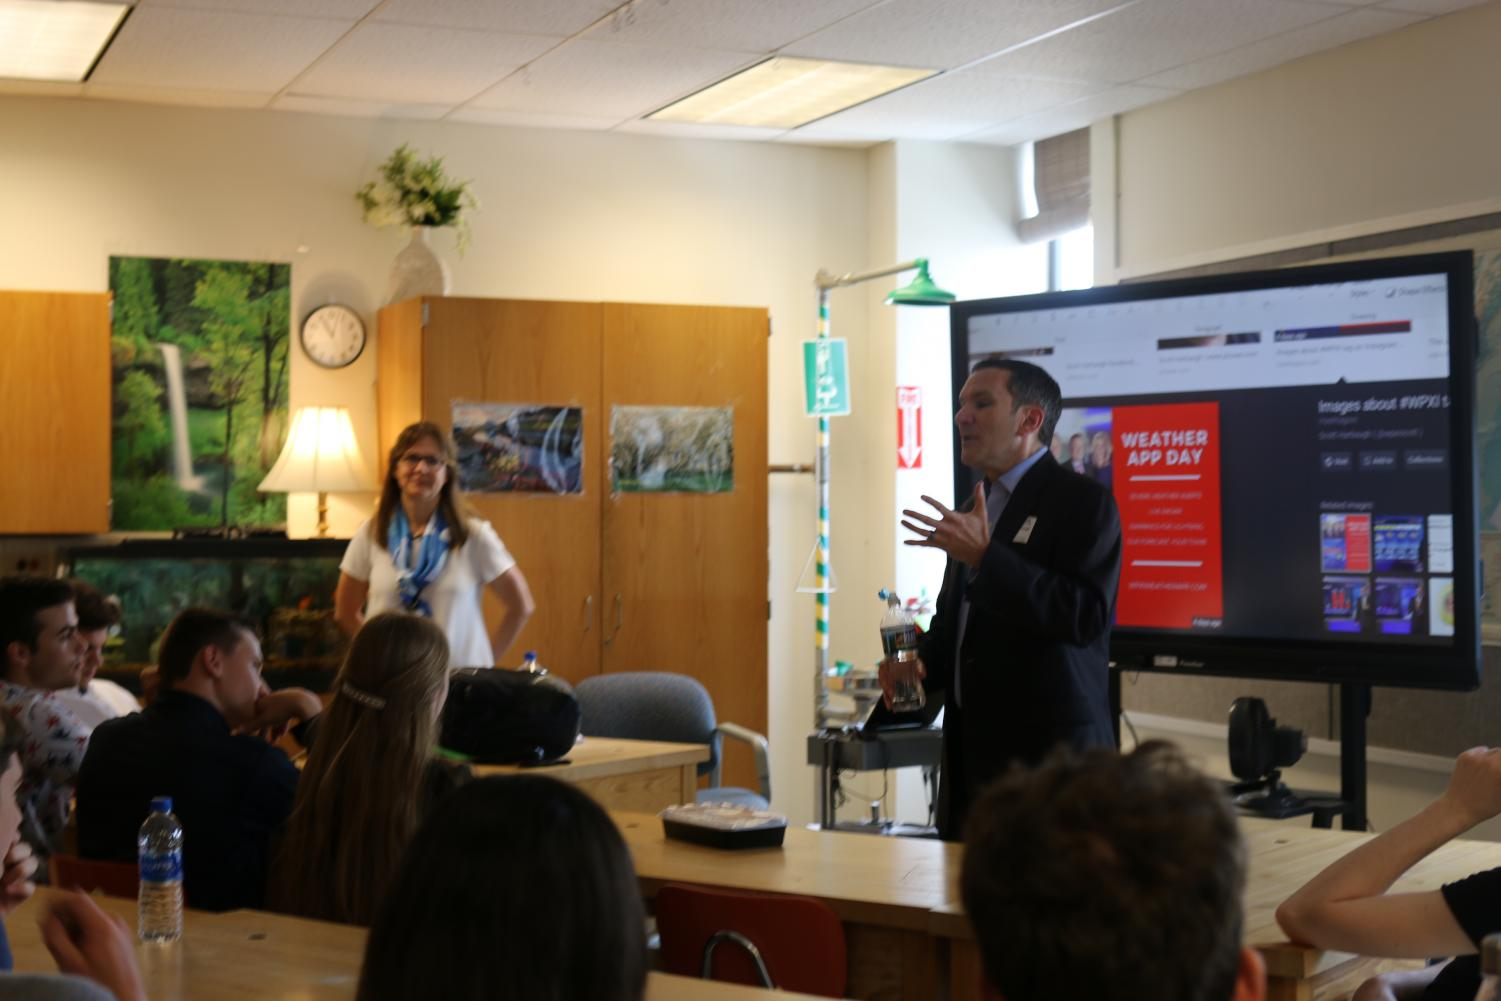 WPXI meteorologist Scott Harbaugh visited Ms. Schmiech's Honors Meteorology classes on Tuesday, May 28.